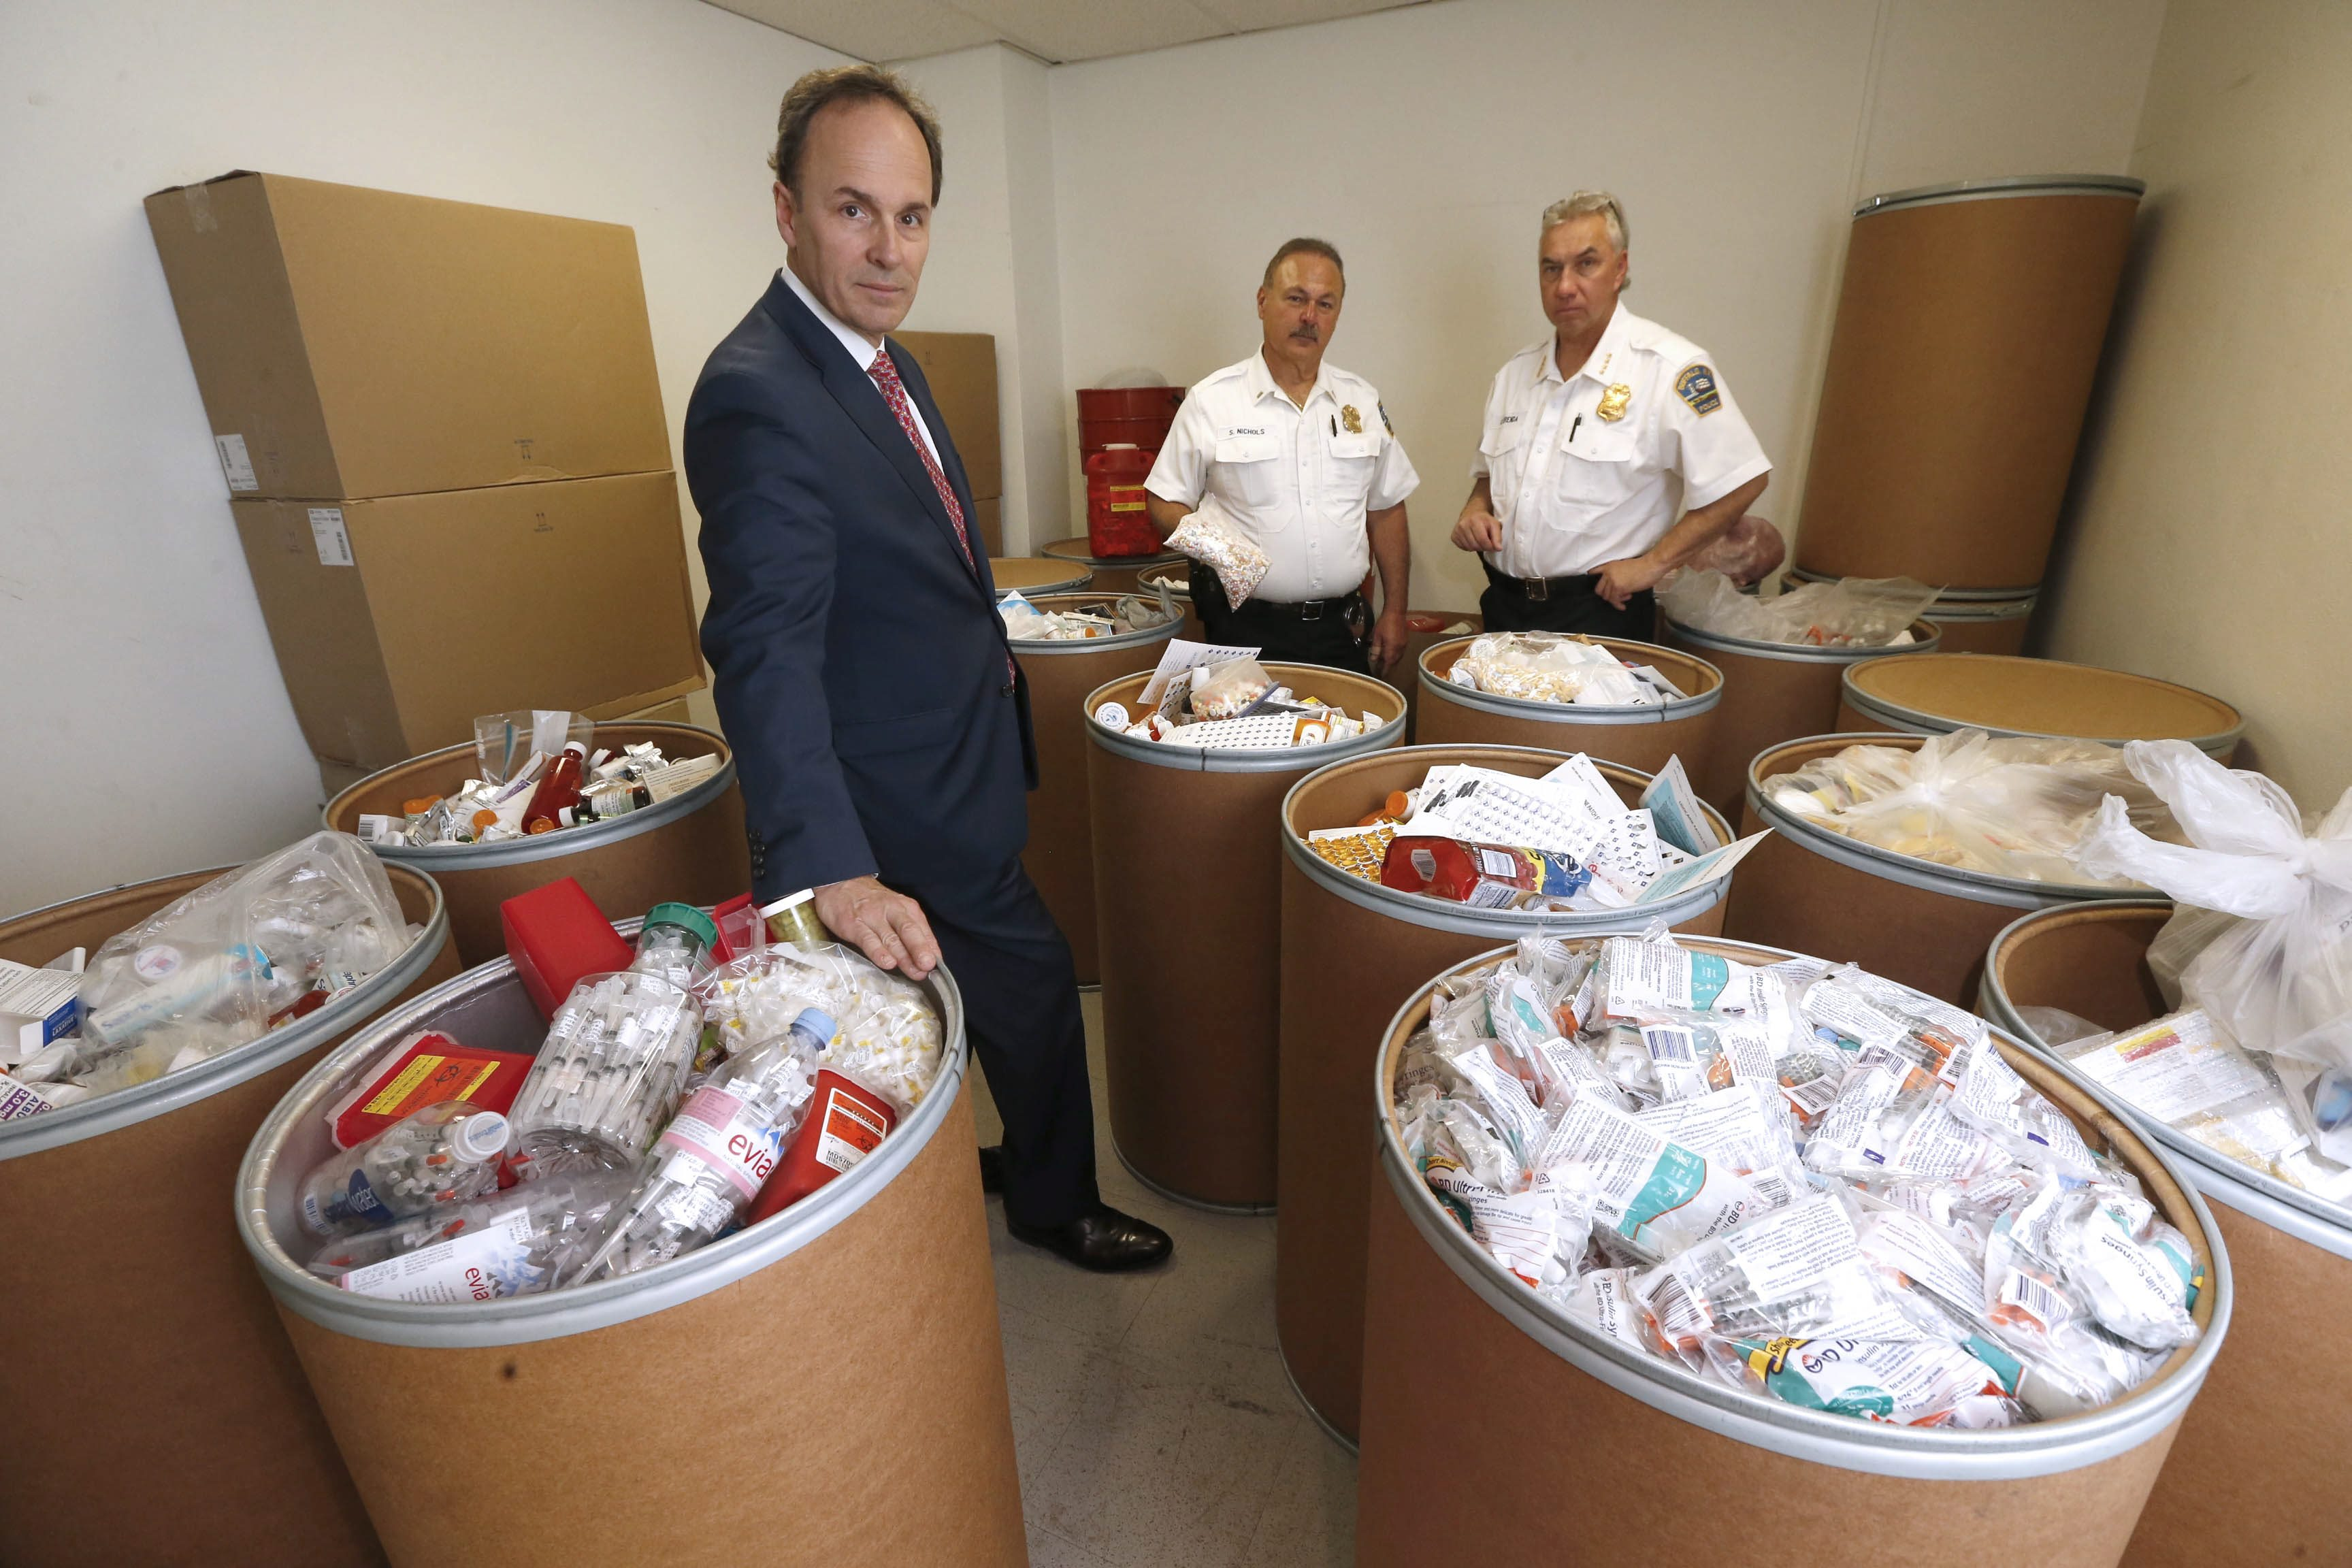 From left, U.S. Attorney William Hochul, Lt. Steven J. Nichols and Buffalo Police Commissioner Daniel Deranda survey the 18 55-gallon drums of drugs and needles that have been turned over at drop-offs at the BPD's five district stations on Friday, April 29, 2016. (Robert Kirkham/Buffalo News)